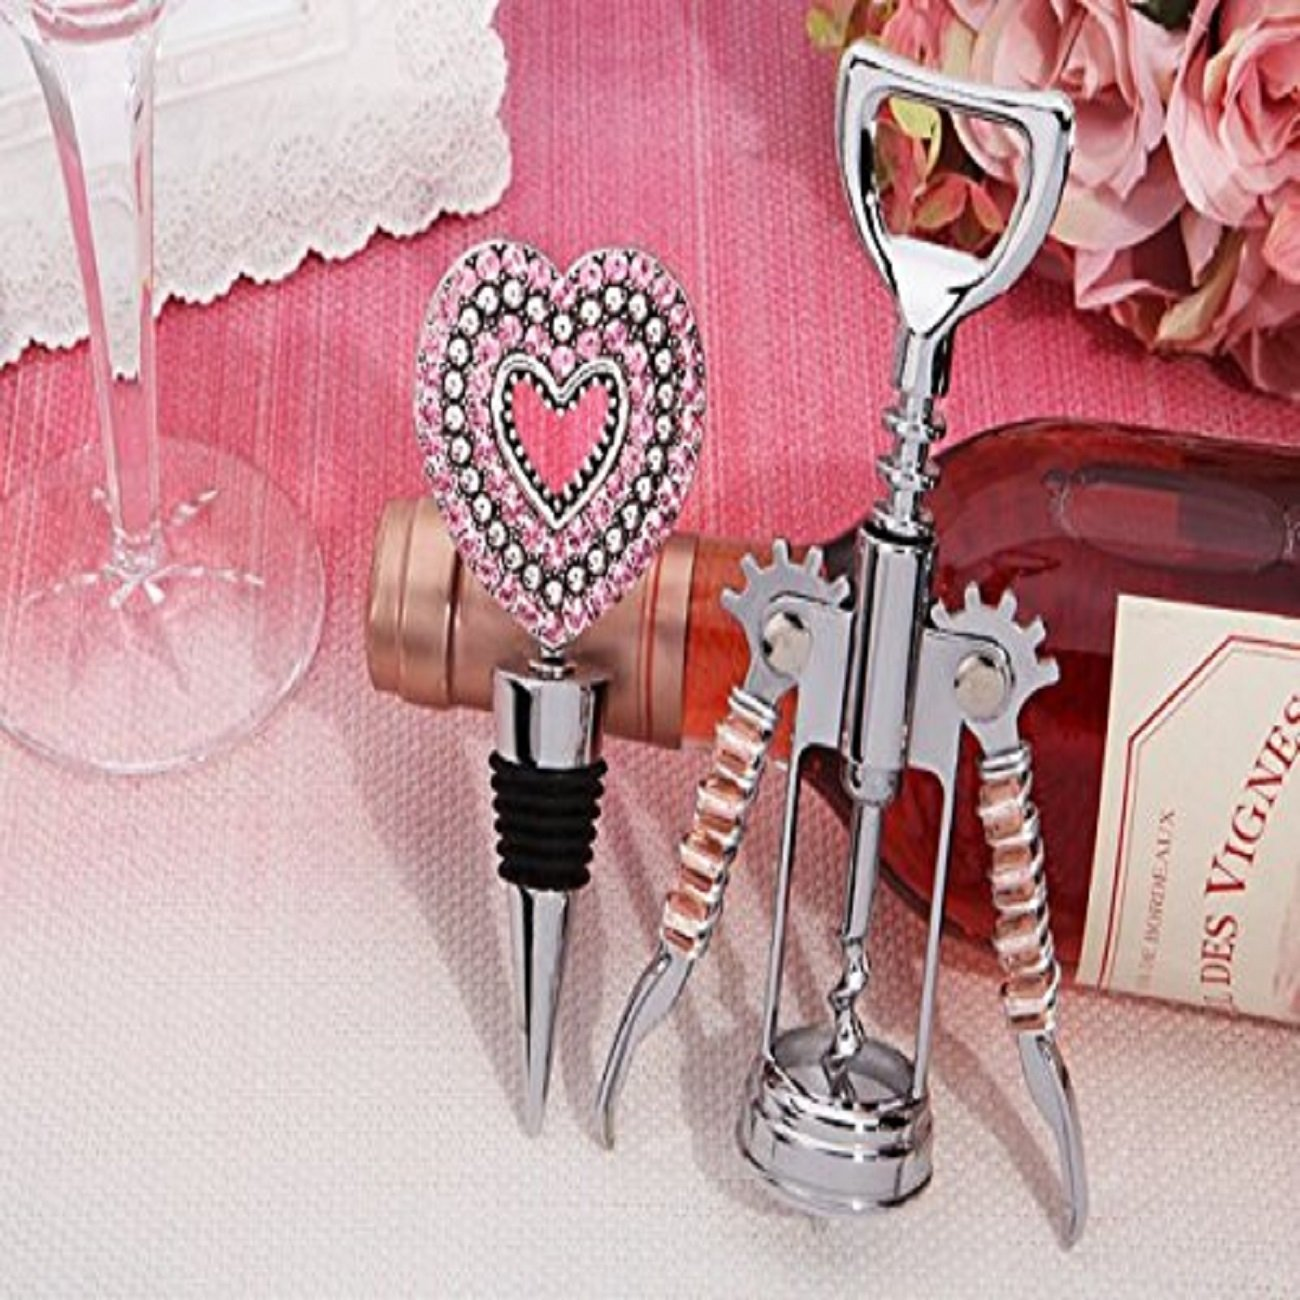 Amazon.com: Pink Crystal Heart Bottle Opener and Stopper Set - 84 ...